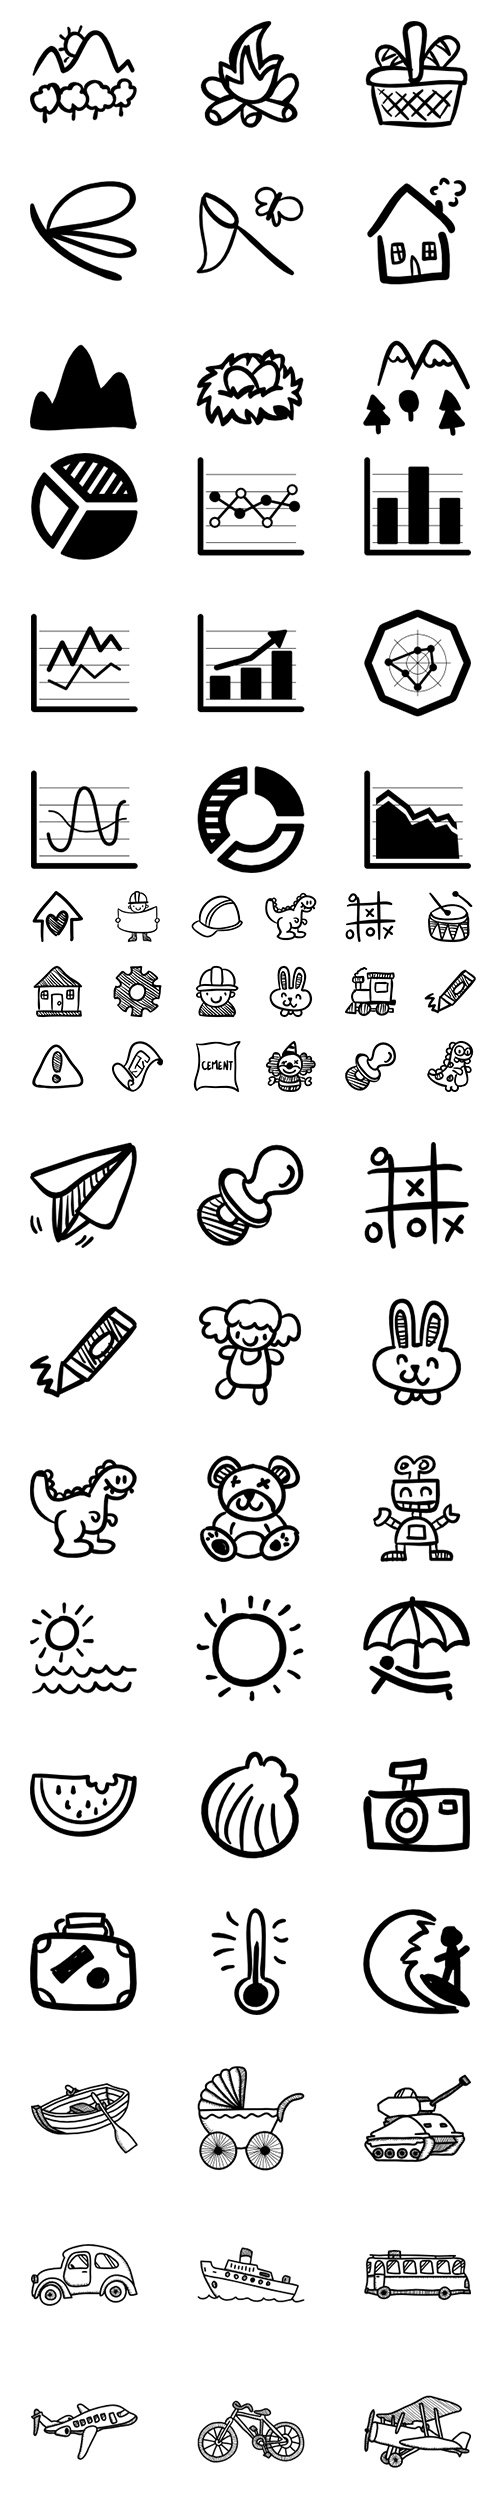 430+ Hand Drawn Detailed Vector Icons Set